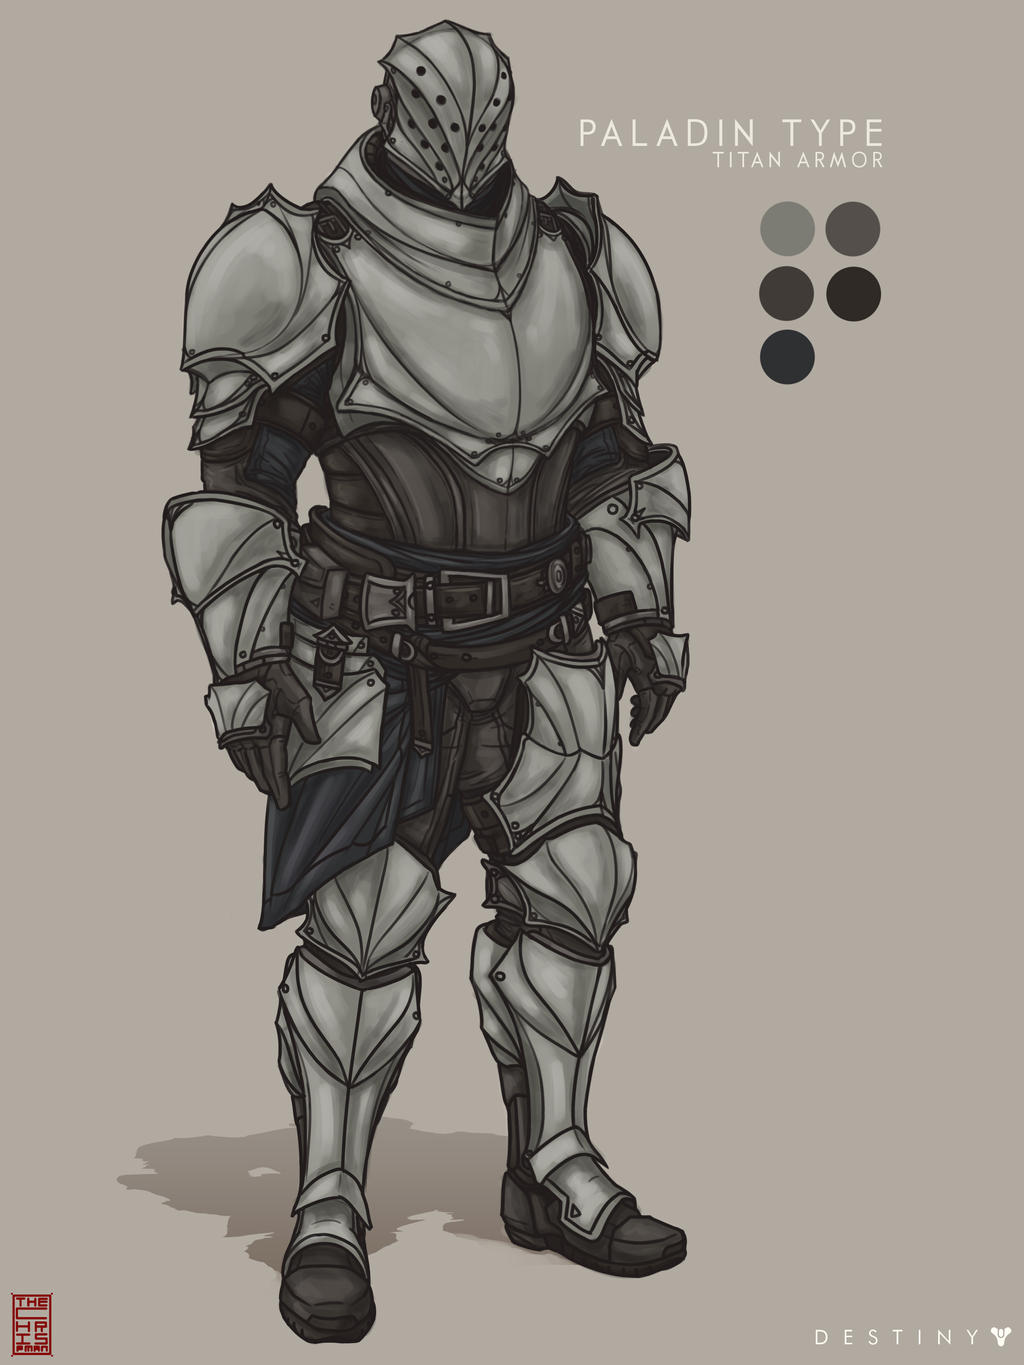 Destiny Concept Art 4 Paladin Type Titan Armor By TheChrisPMan On